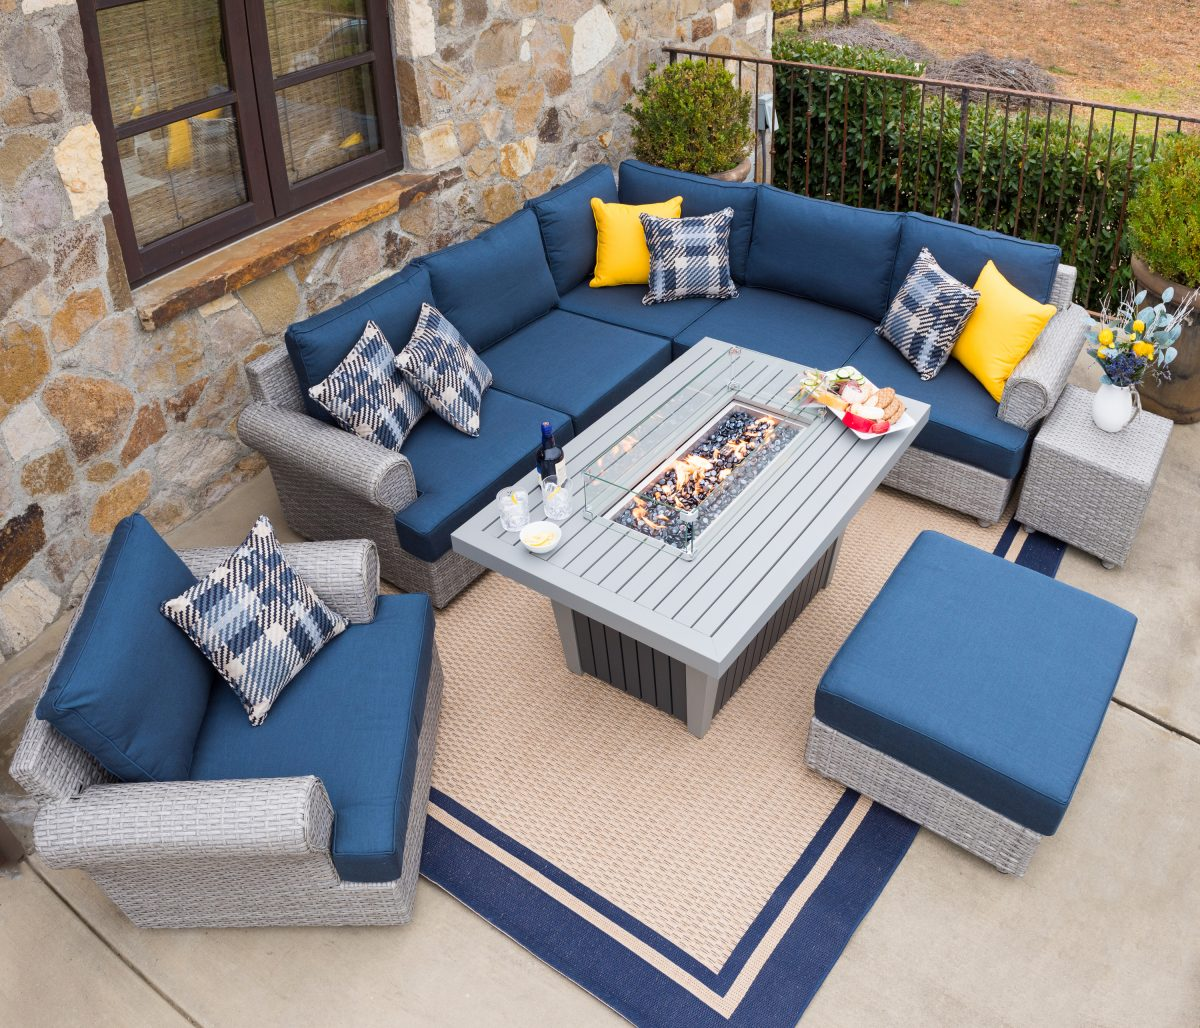 how to arrange patio furniture - sofa placed in corner